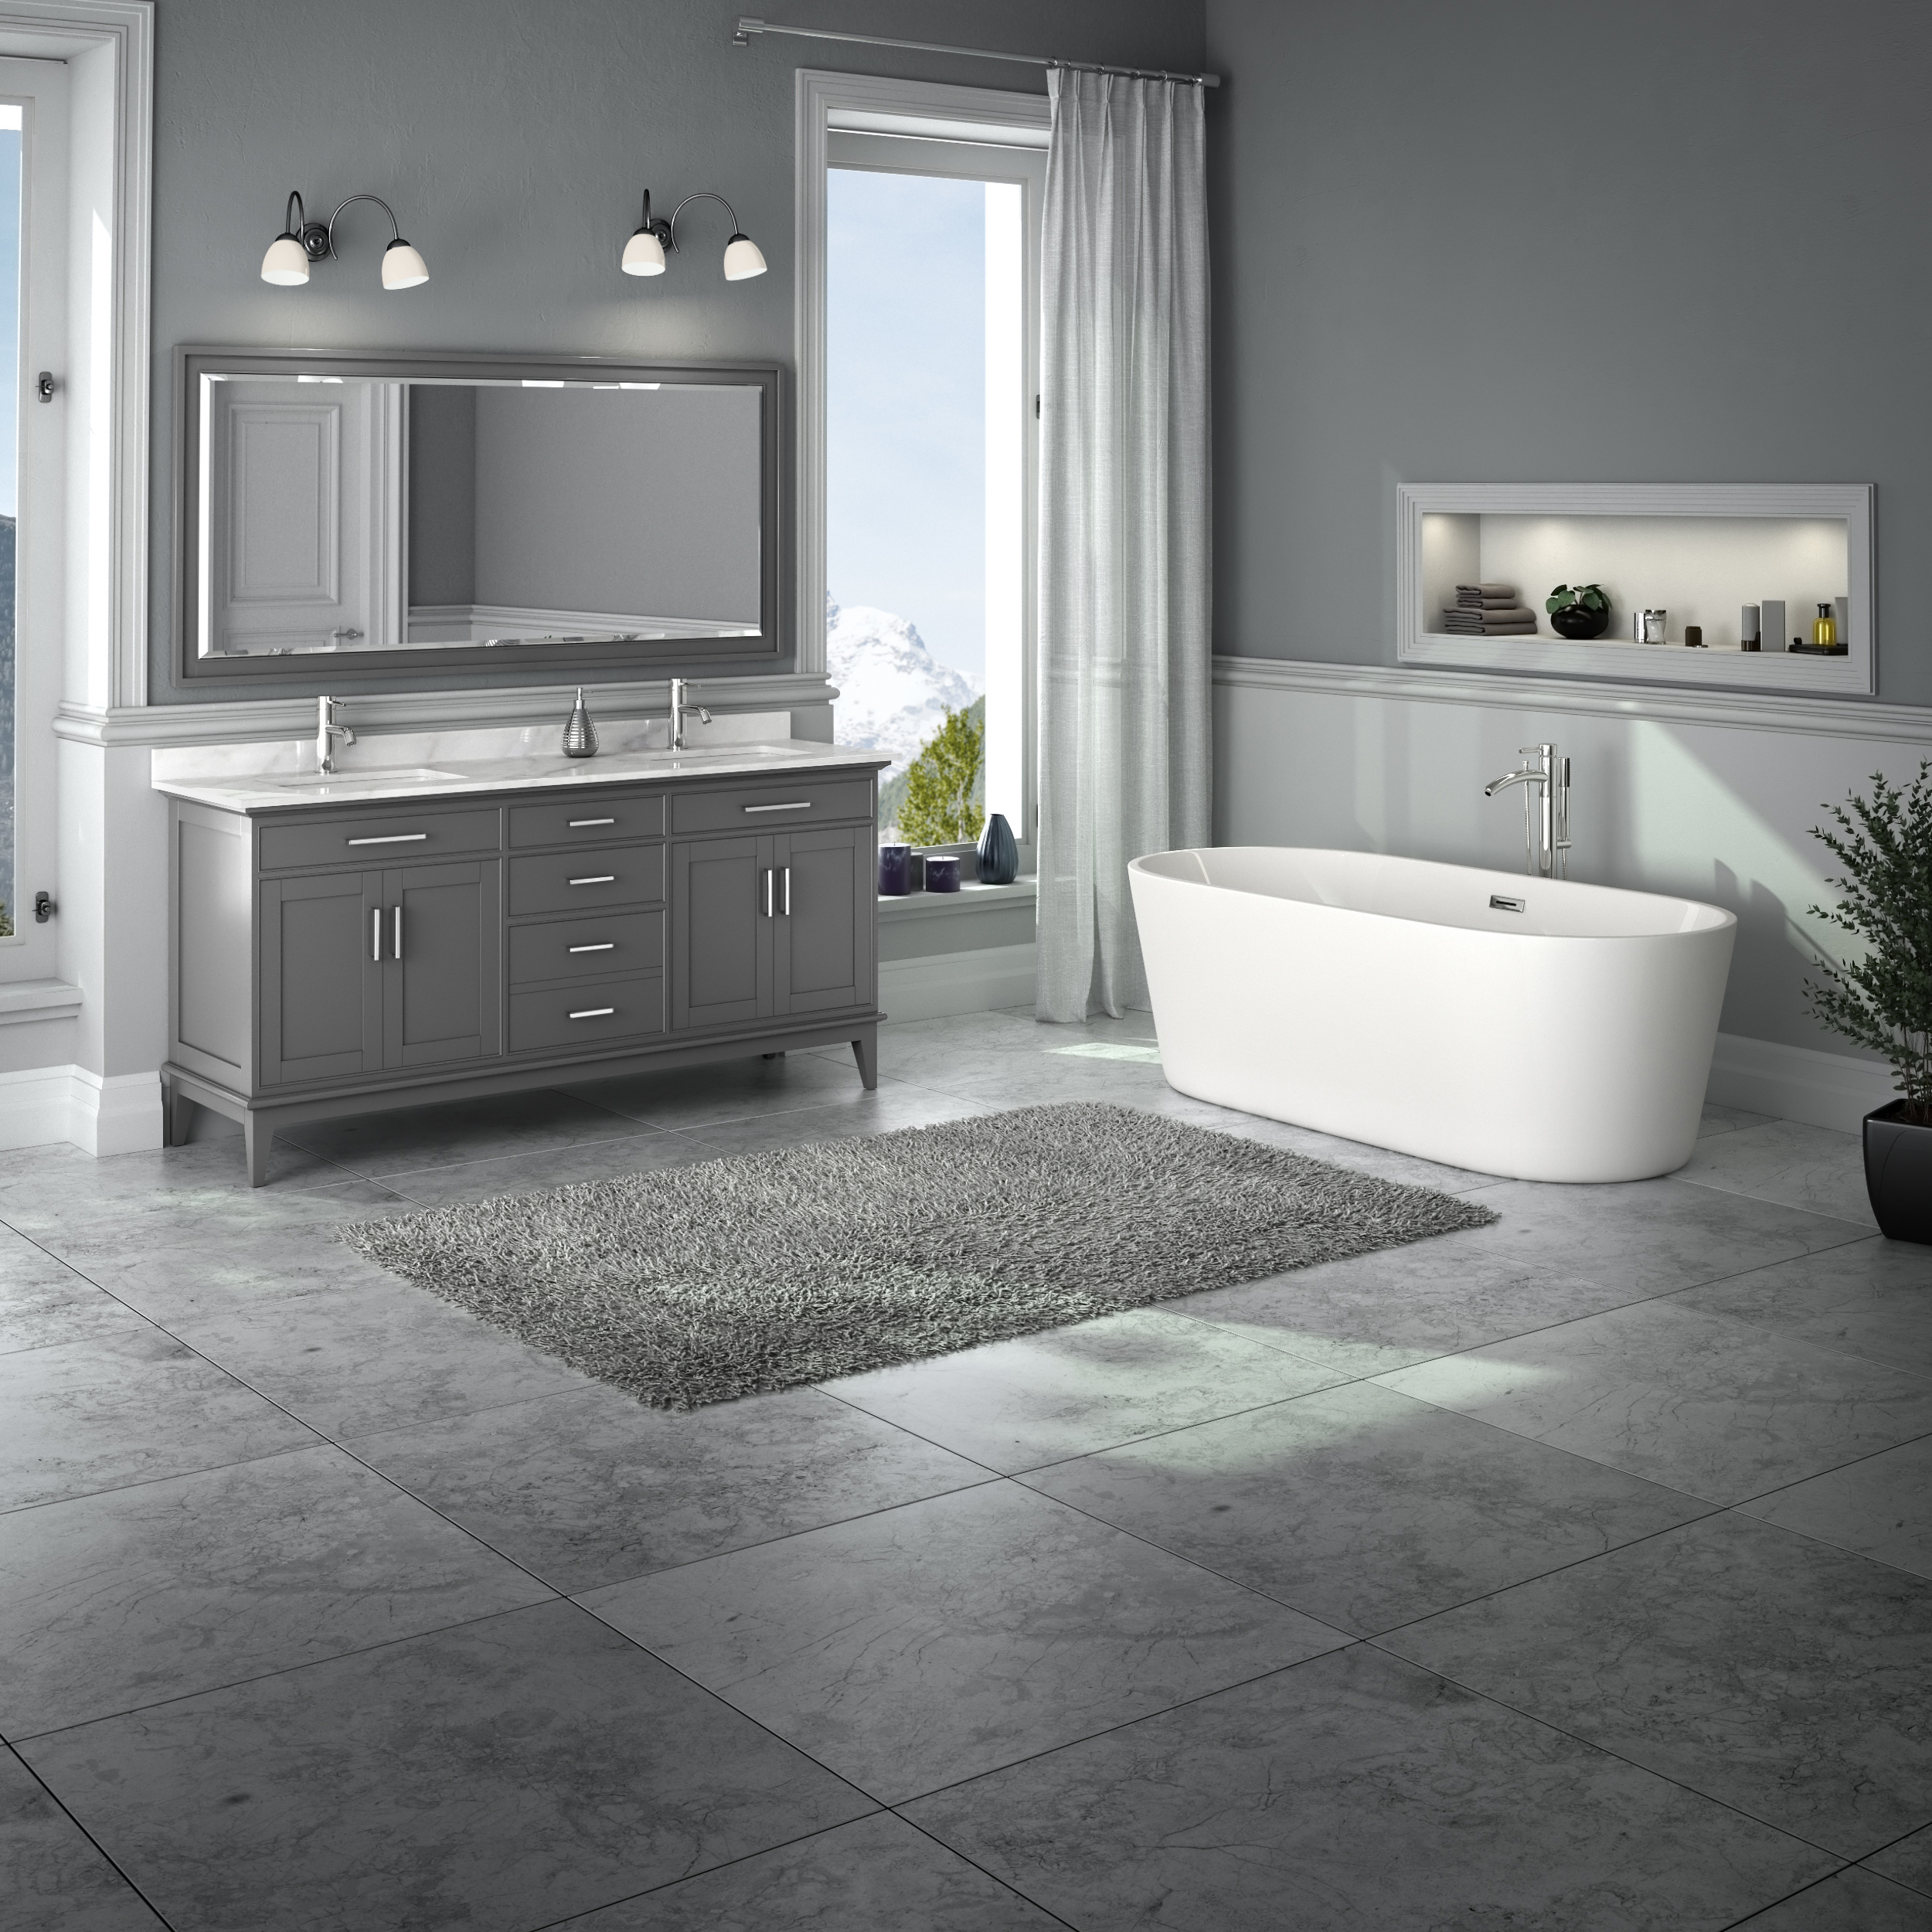 Margate 72 Double Bathroom Vanity Dark Gray Beautiful Bathroom Furniture For Every Home Wyndham Collection